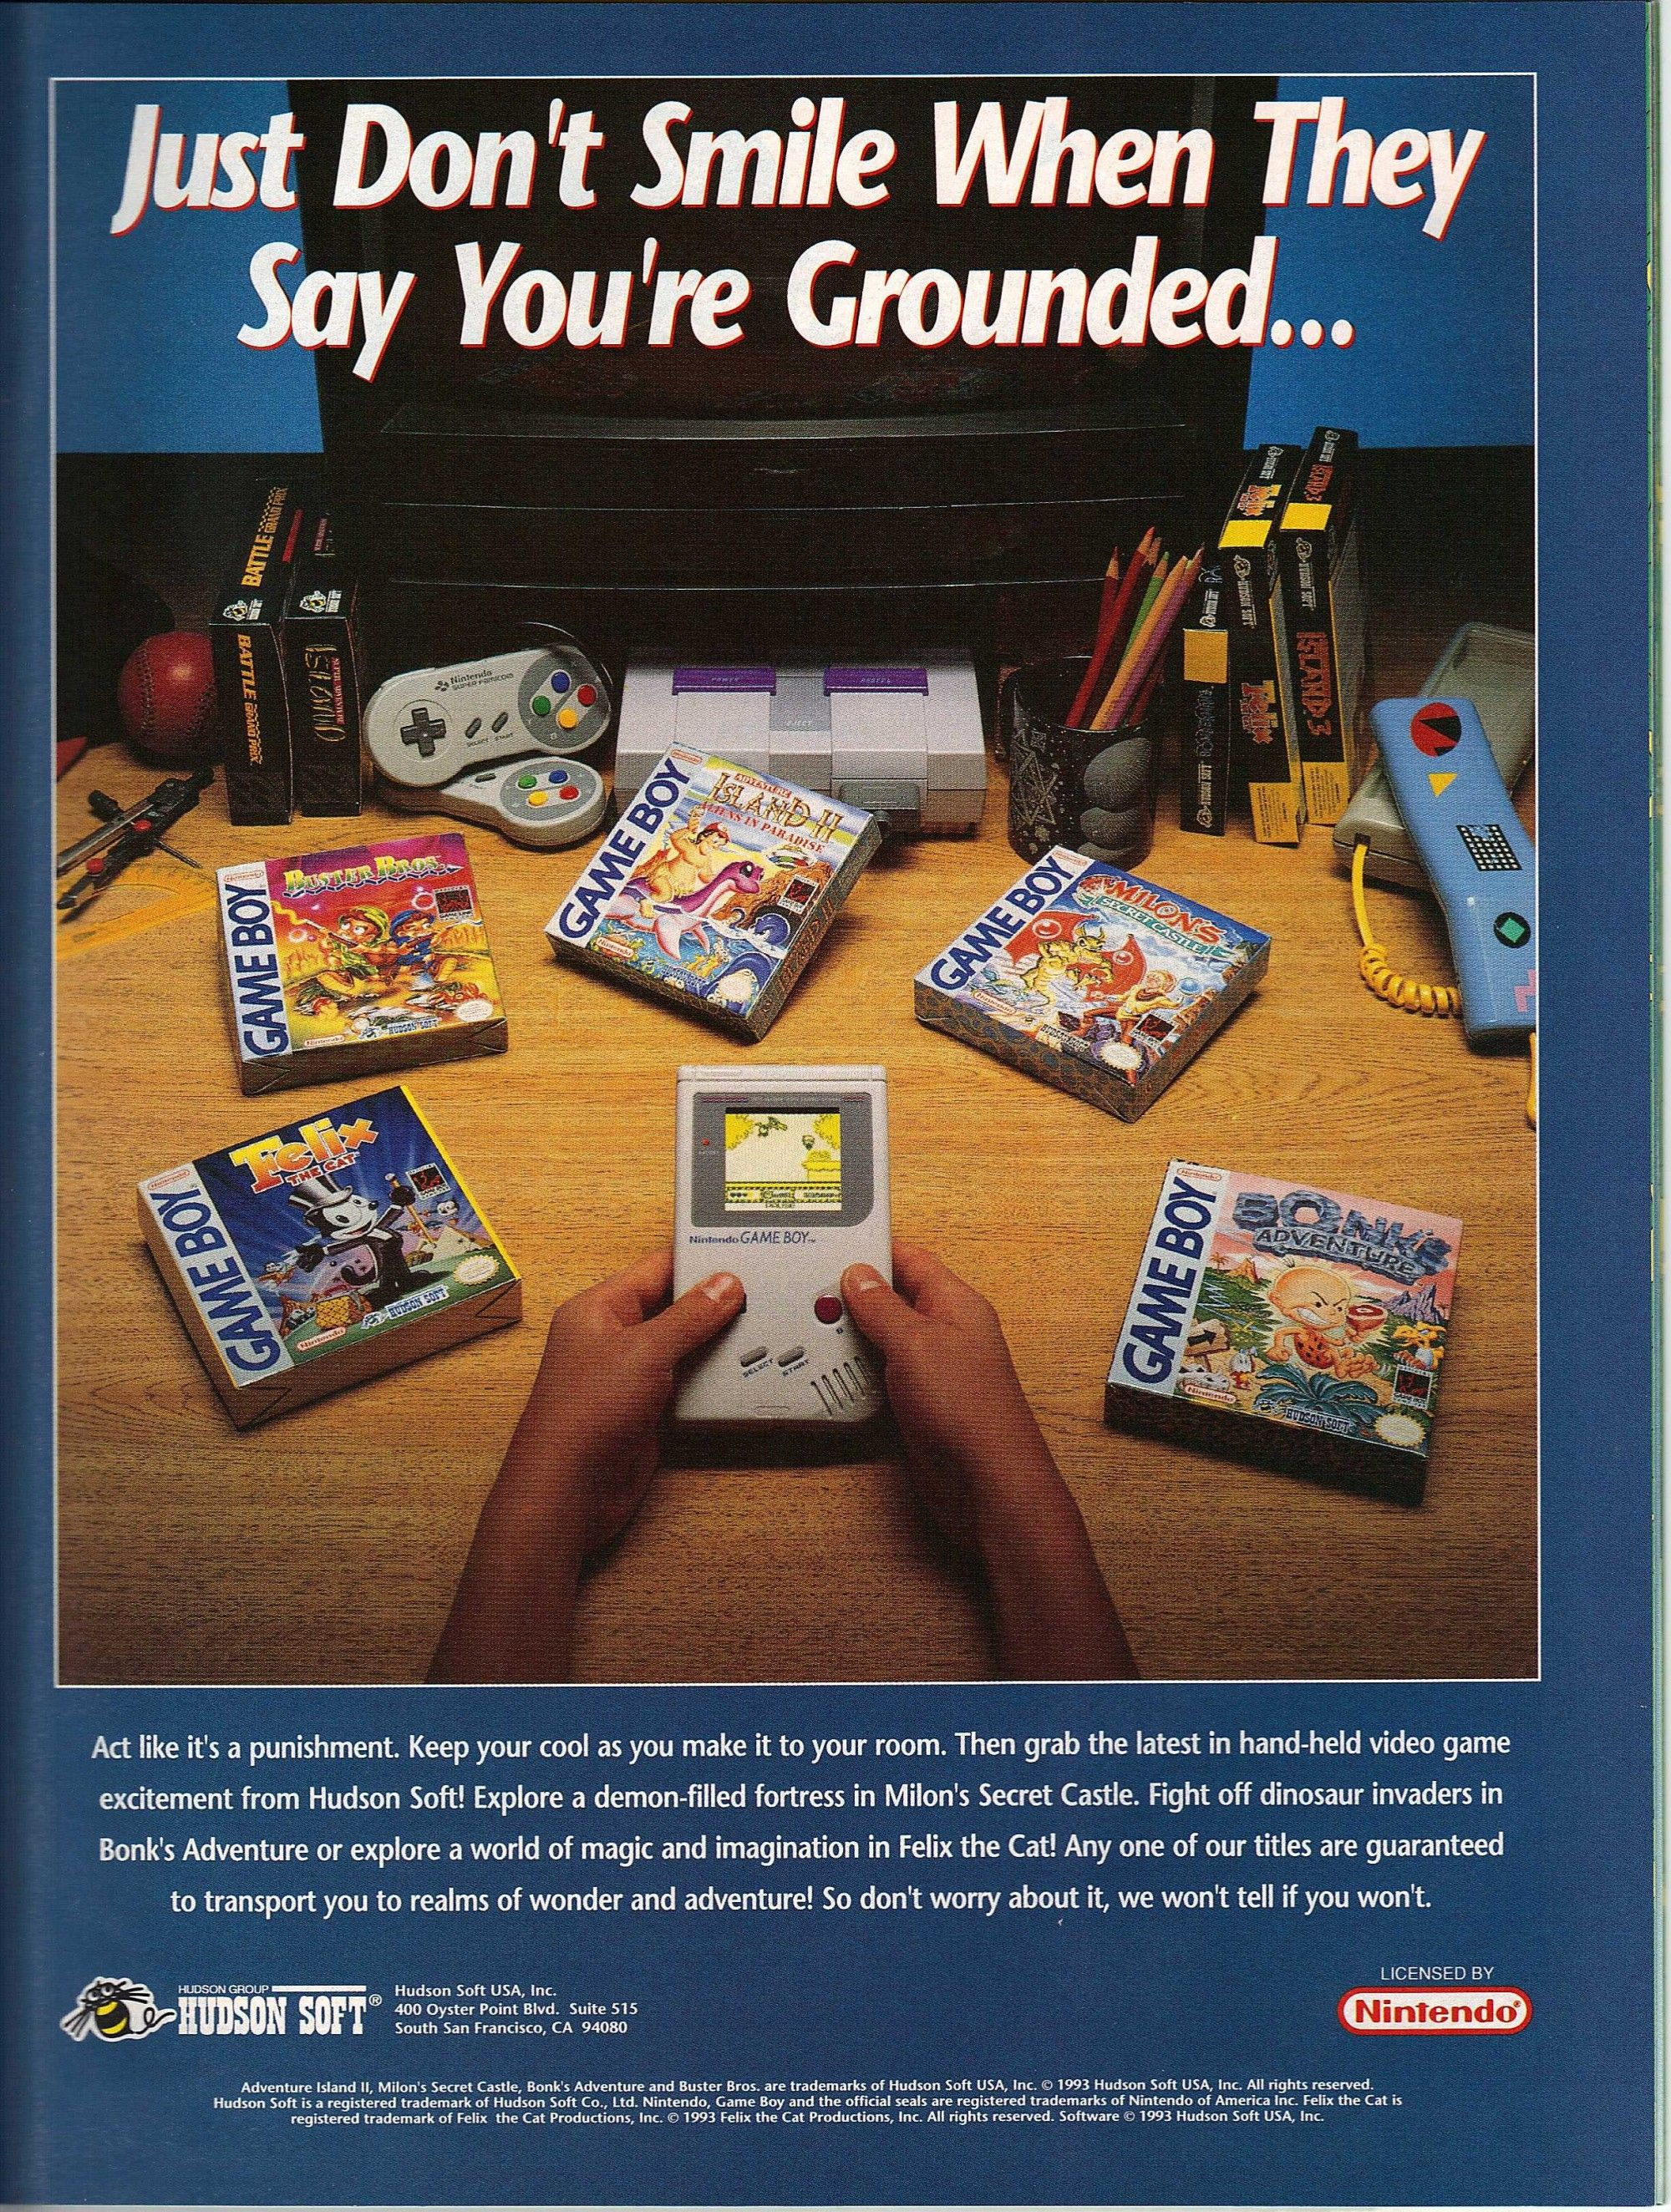 the Horde 3do | Grounded Nintendo (Advertisement) | My